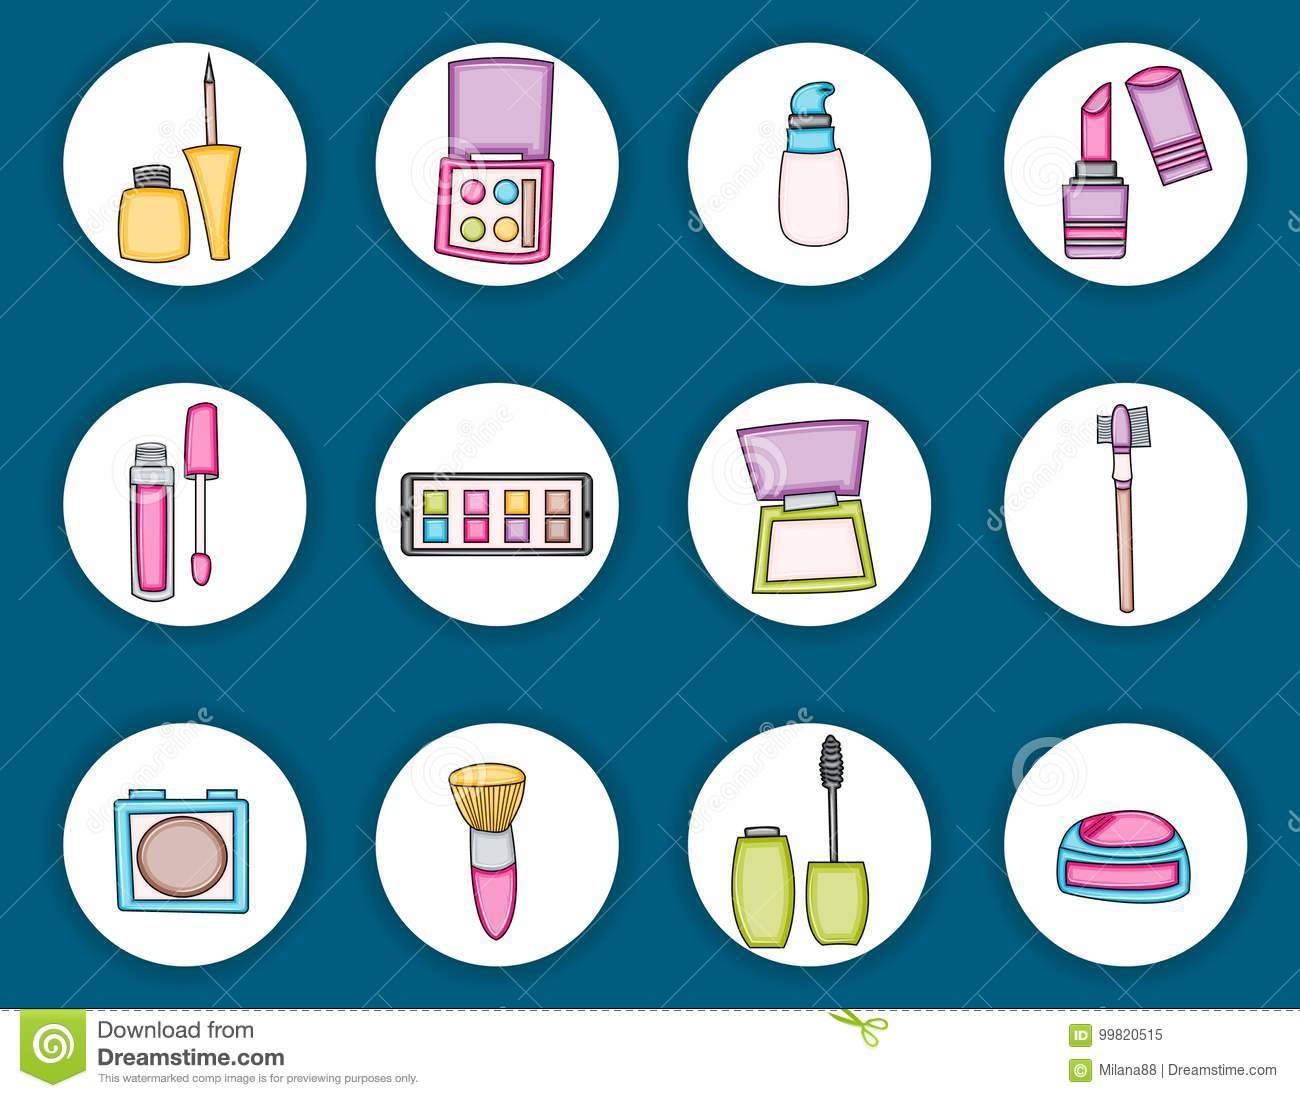 Beauty Products Cartoon Stock Illustrations 1 861 Beauty Products Cartoon Stock Illustrations Vectors Clipart Dreamstime